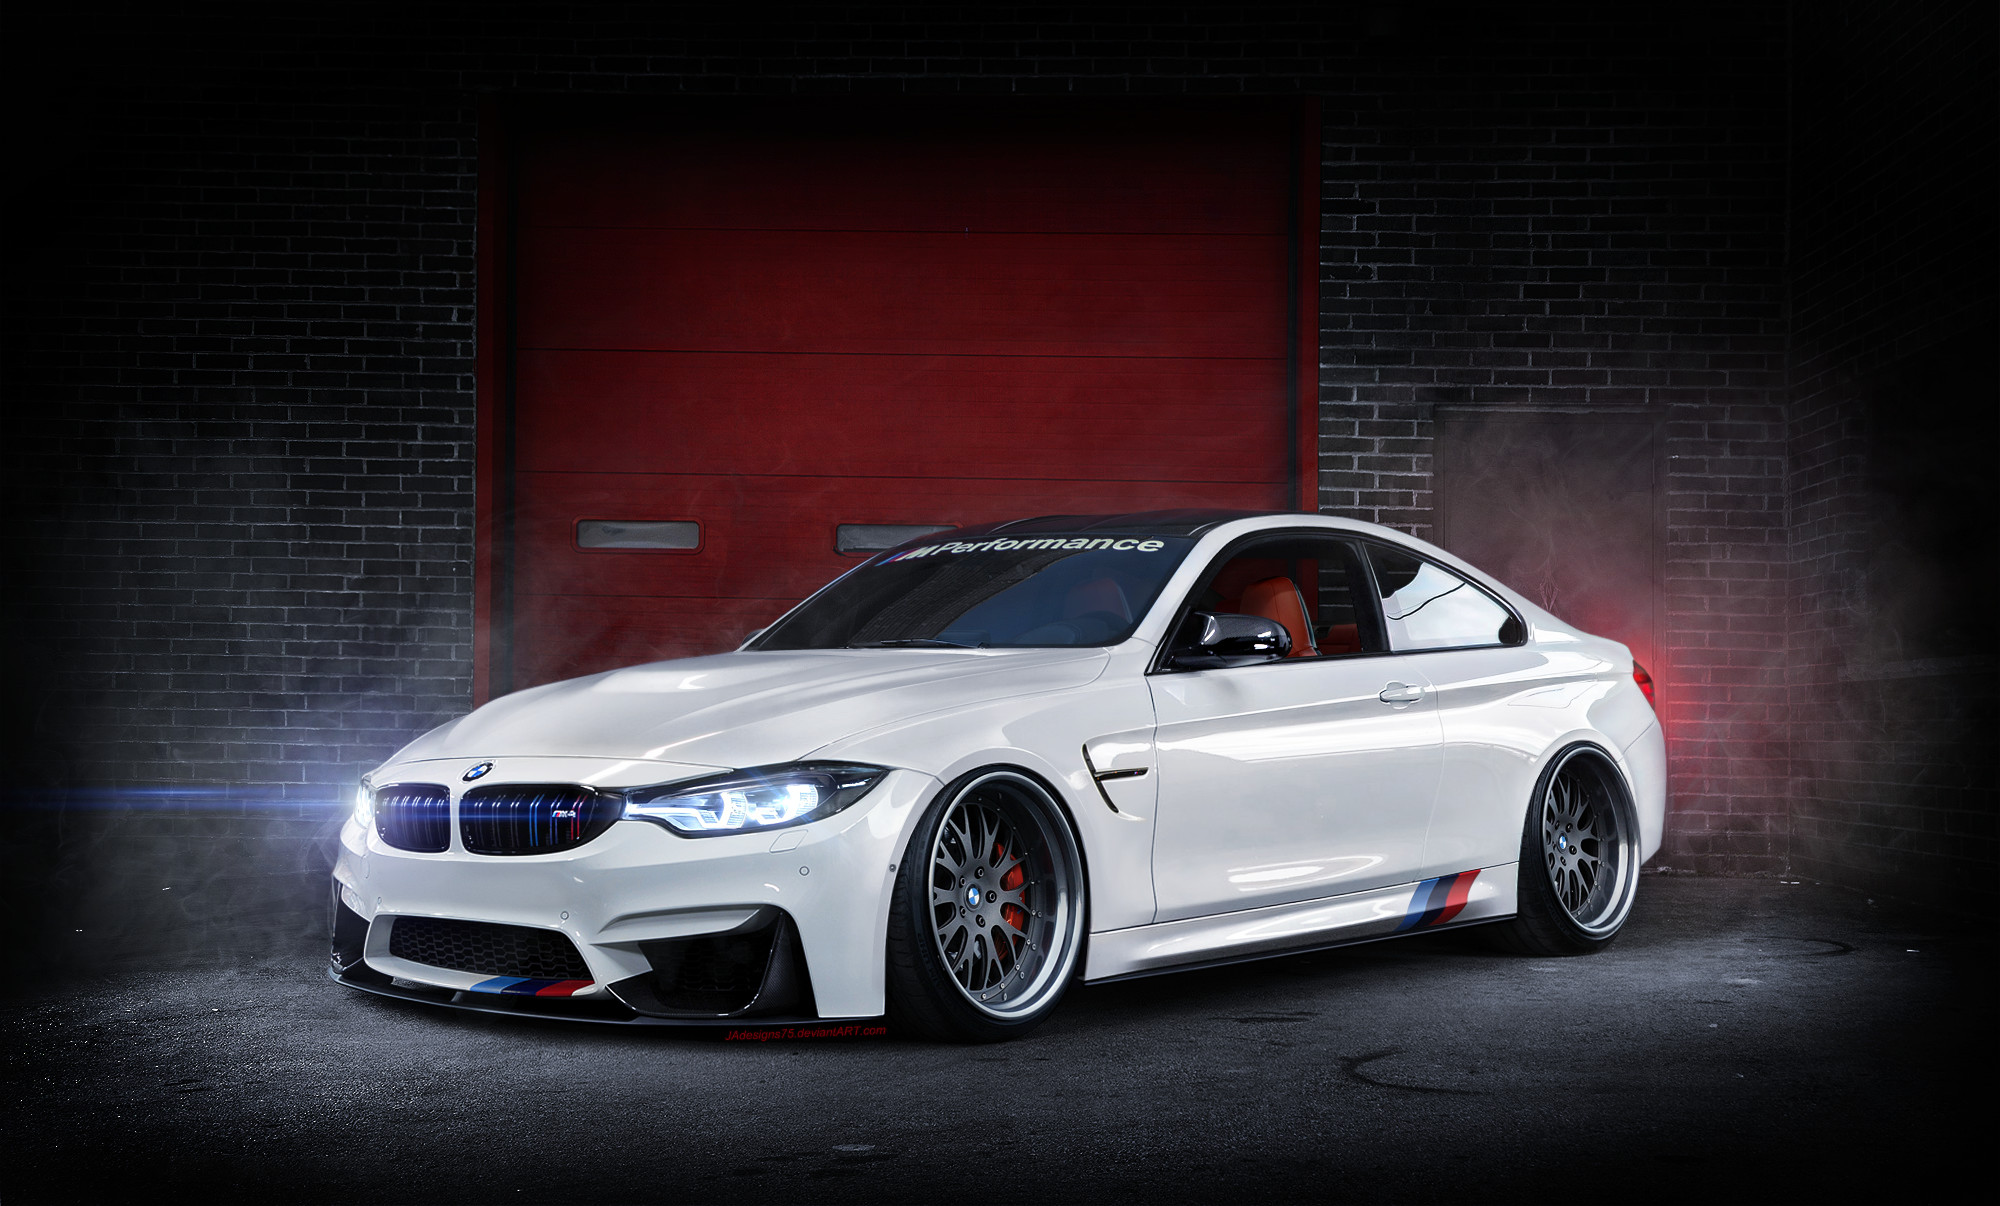 Bmw F82 M4 Refinished By Jadesigns75 On Deviantart